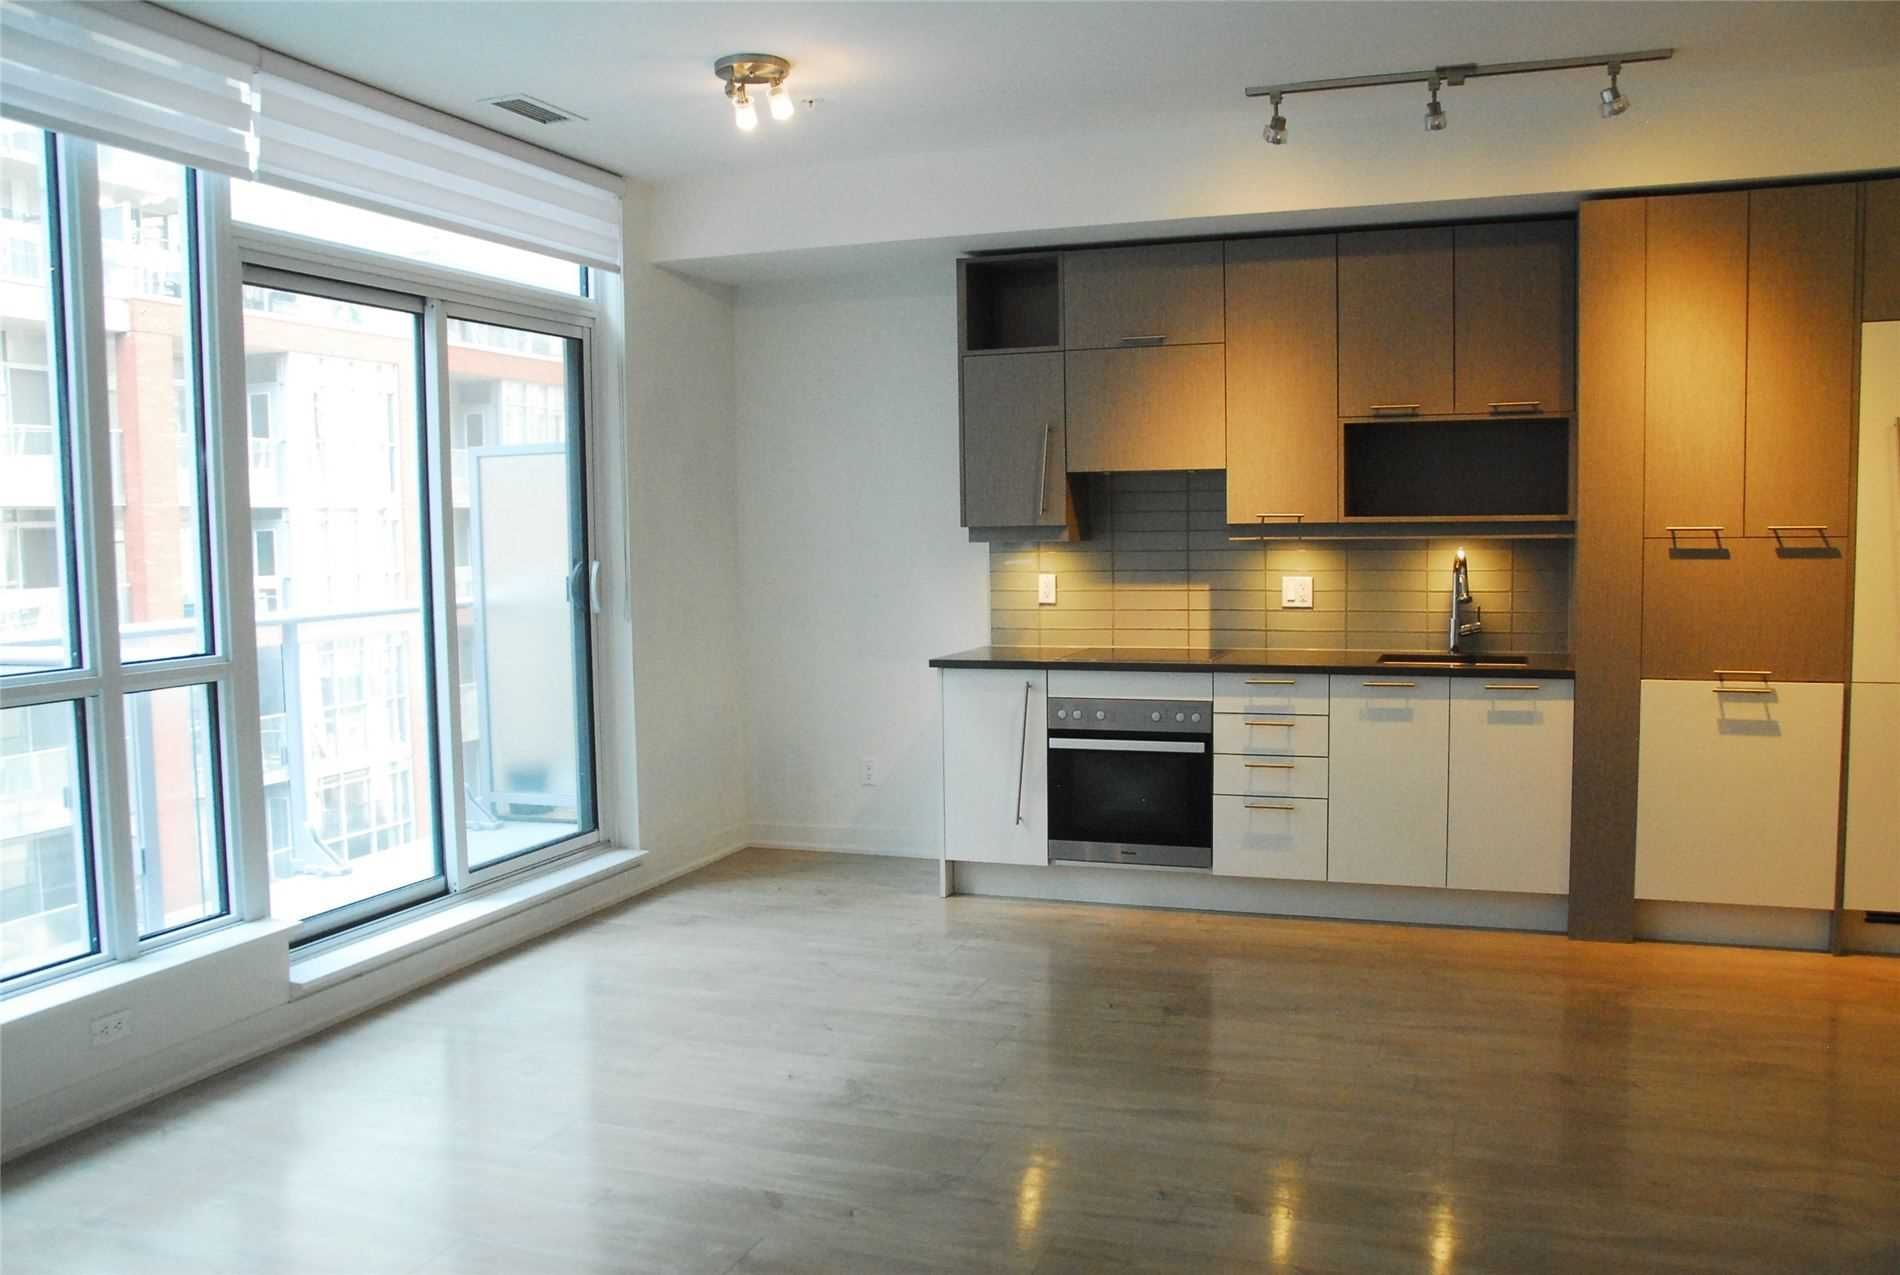 30 Nelson St, unit 515 for rent in Toronto - image #2